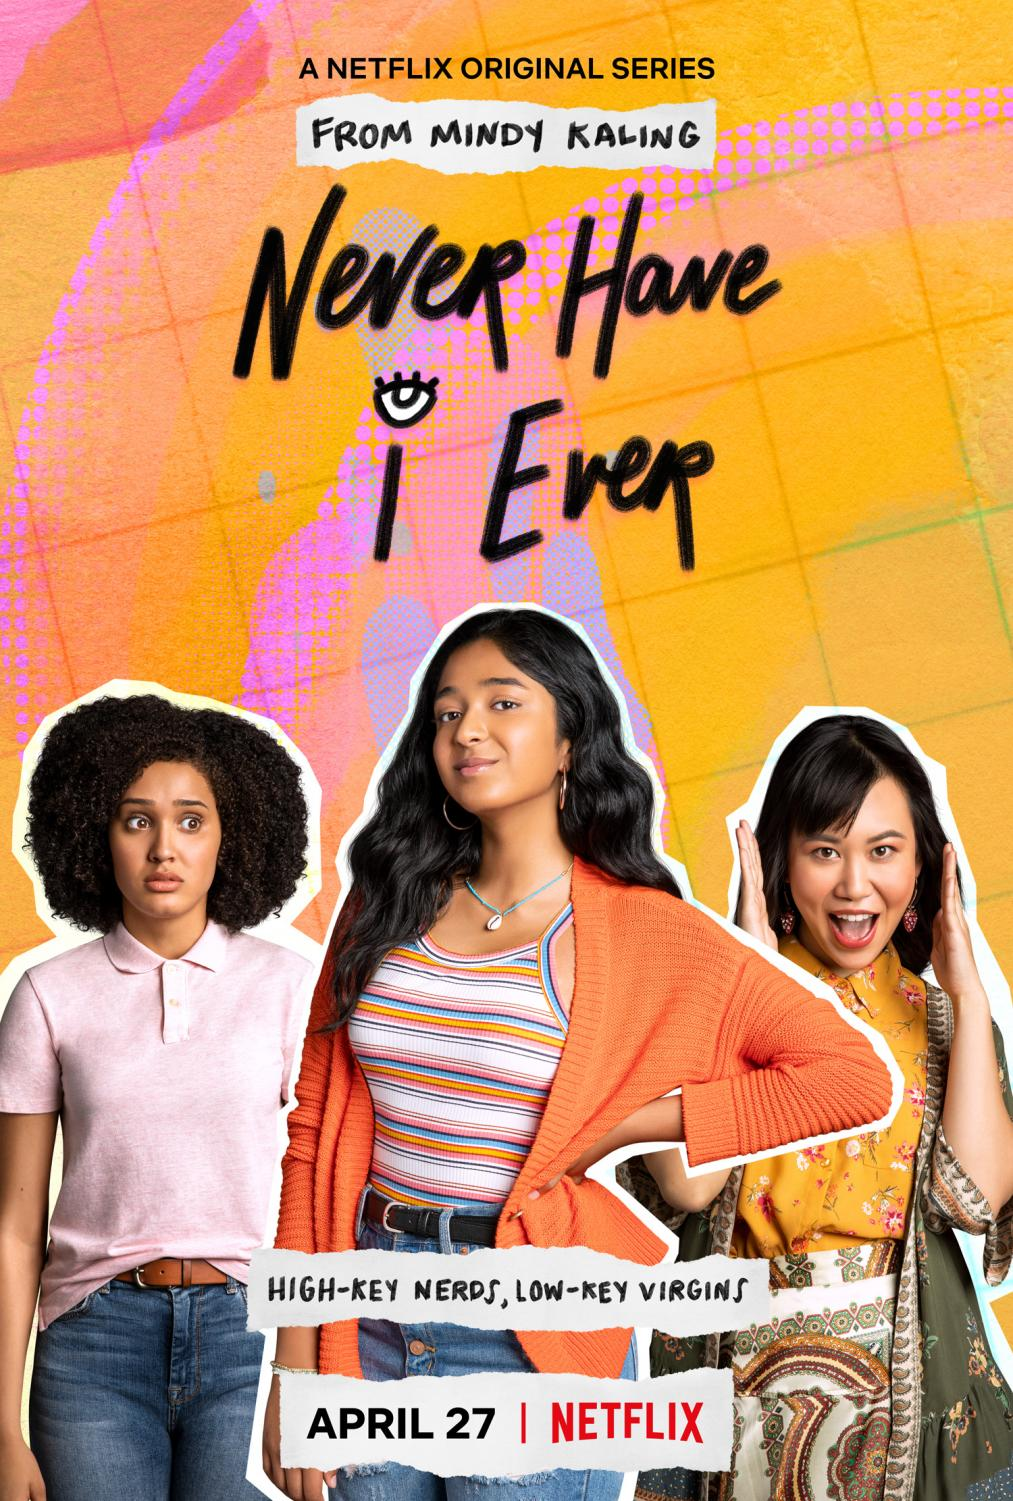 Never Have I Ever is out on Netflix